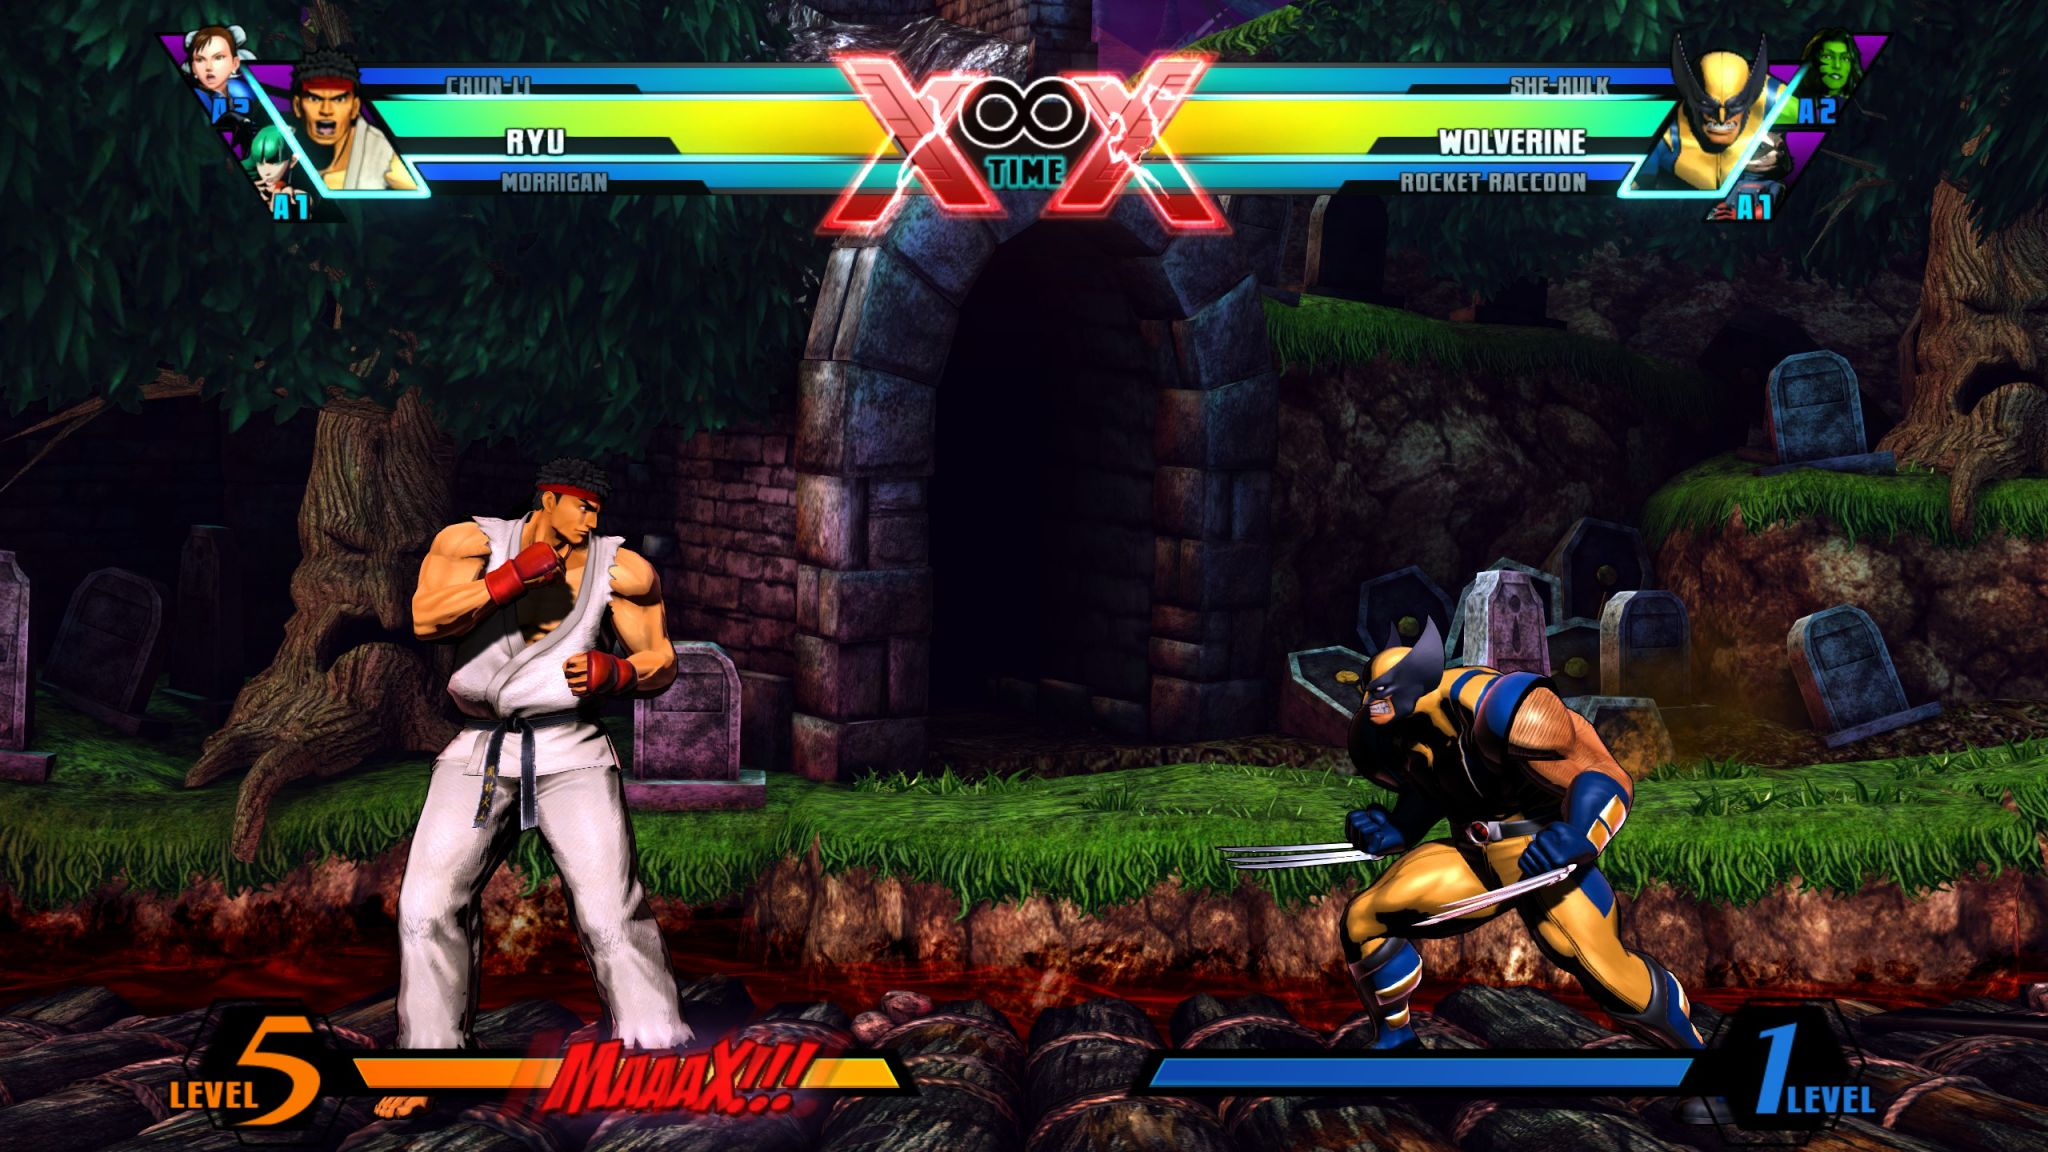 <em>Marvel vs. Capcom 3</em>'s graphics had a comic book shaded quality that helped them feel more like the original sprite art.